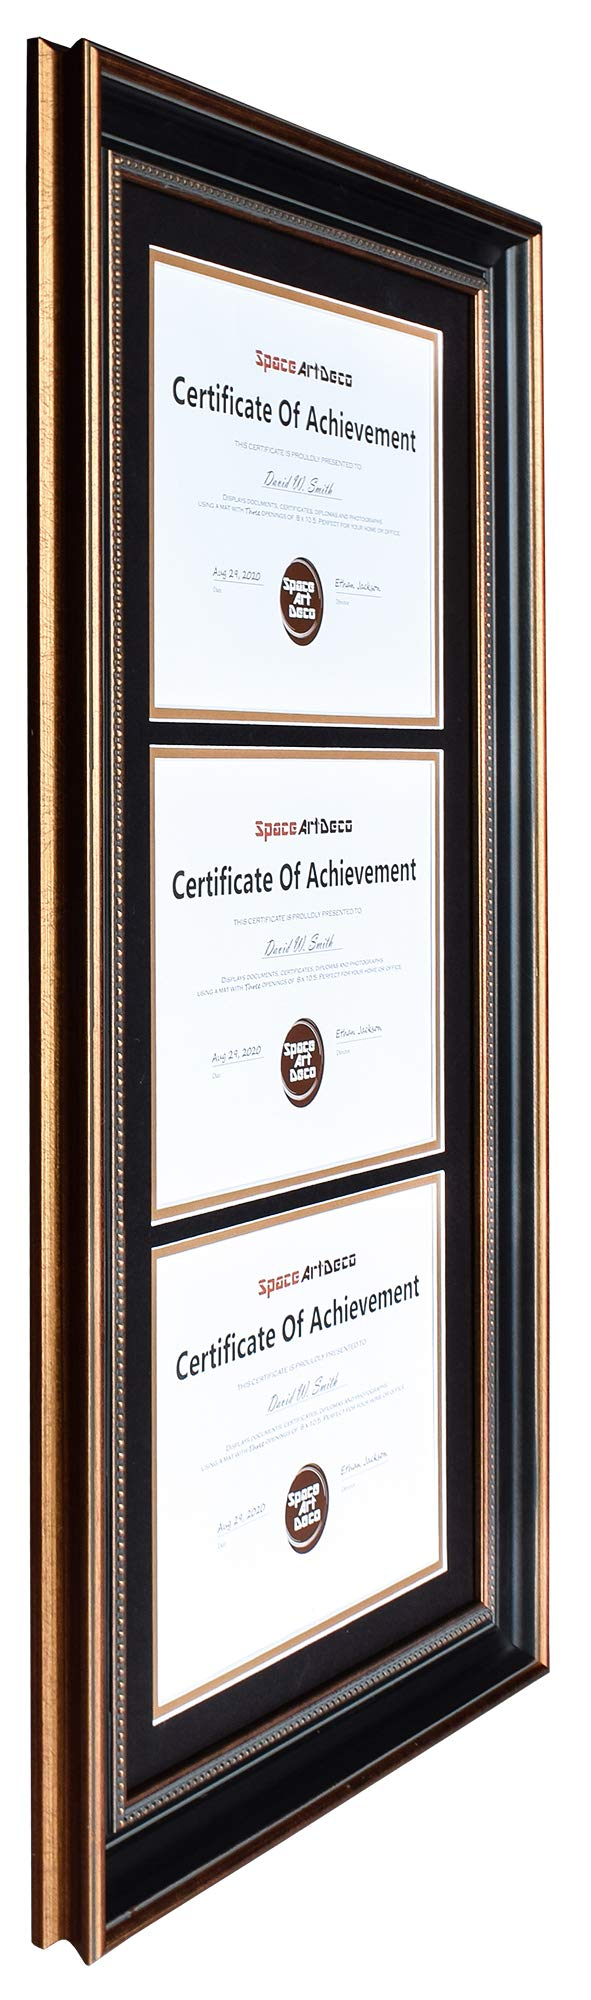 Space Art Deco Ornate Gold Black Design Vertical Triple Certificate/Diploma Frame - Black Over Gold Double Mat - for Three 8.5x11 Certificates and Diplomas- Sawtooth Hangers - Wall Mount (Portrait) by Space Art Deco (Image #3)